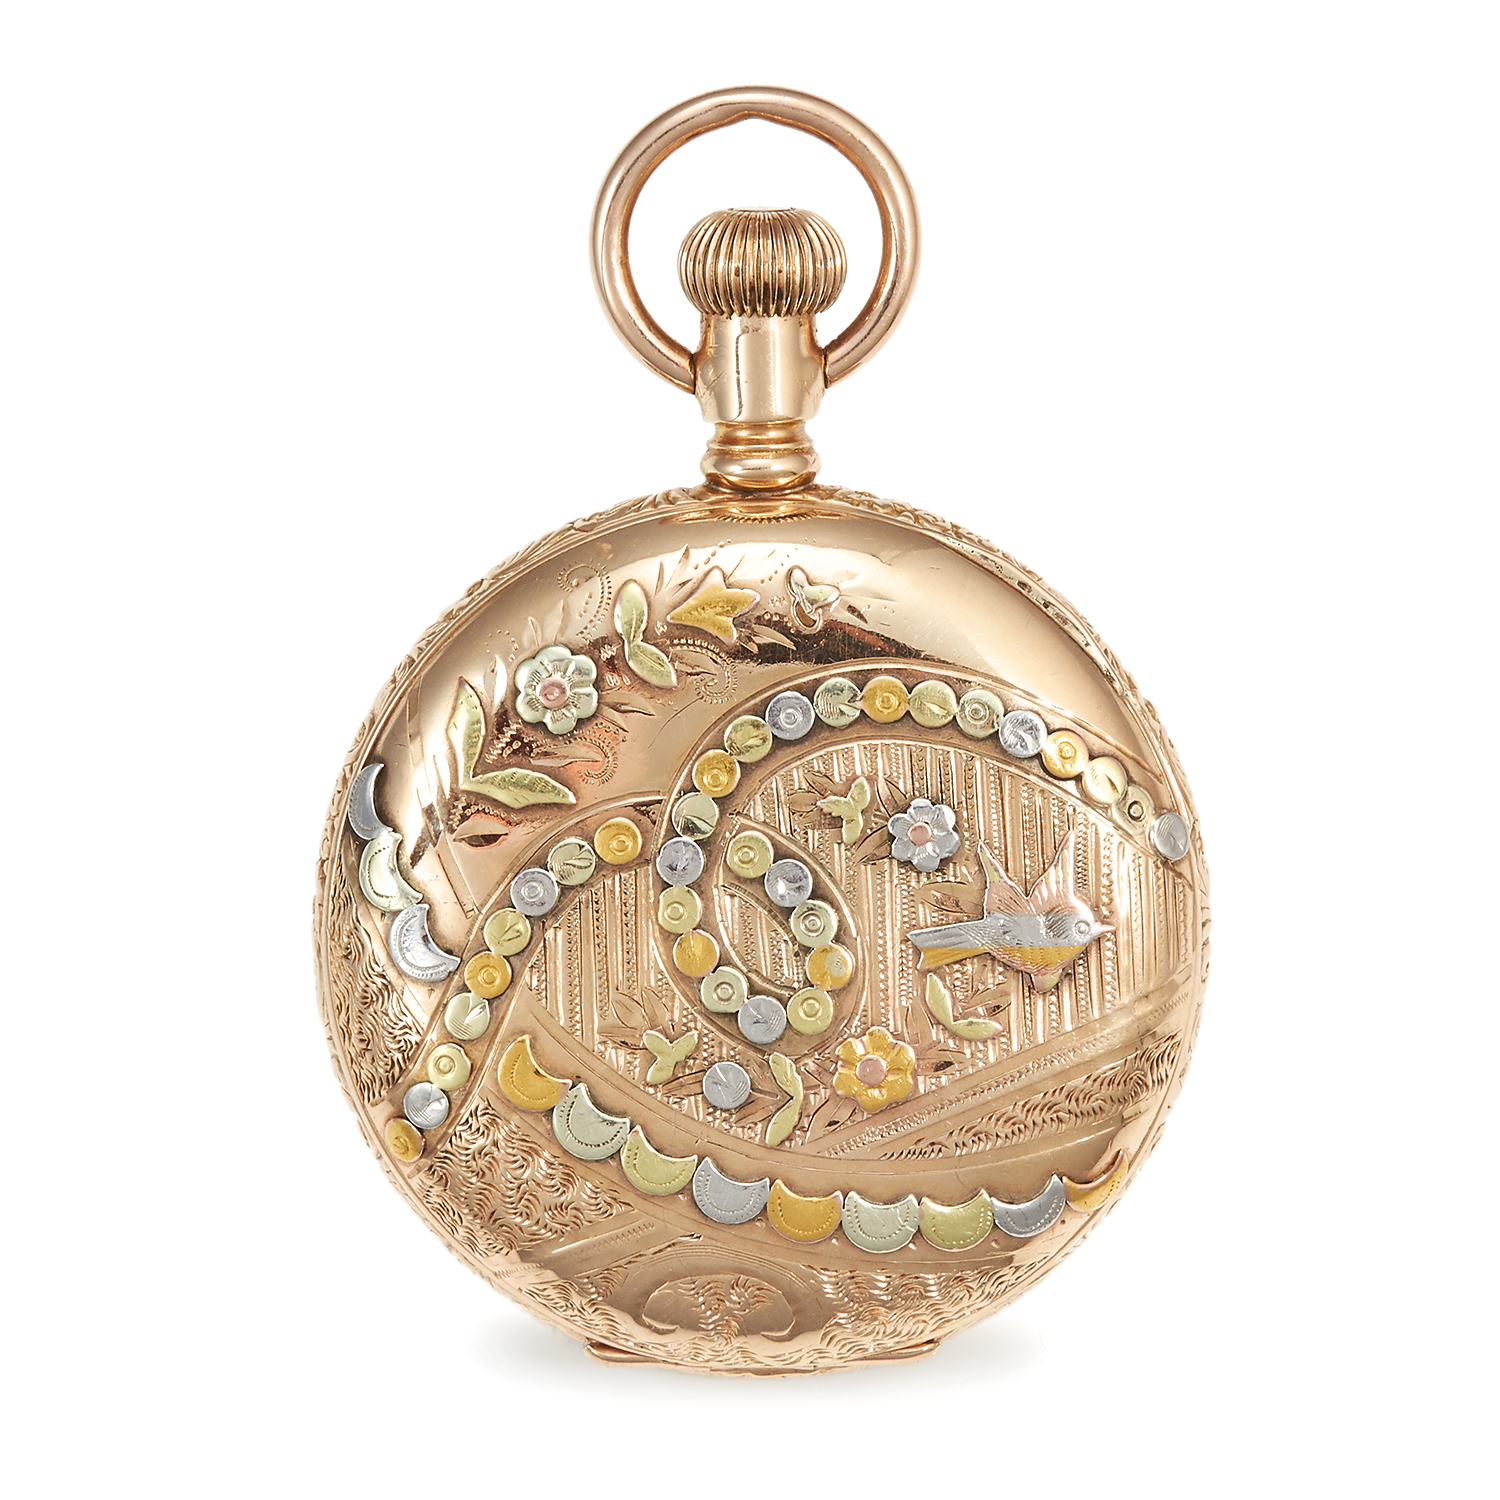 Los 309 - AN ANTIQUE POCKET WATCH, WALTHAM in 14ct gold, the circular case decorated with varicoloured gold